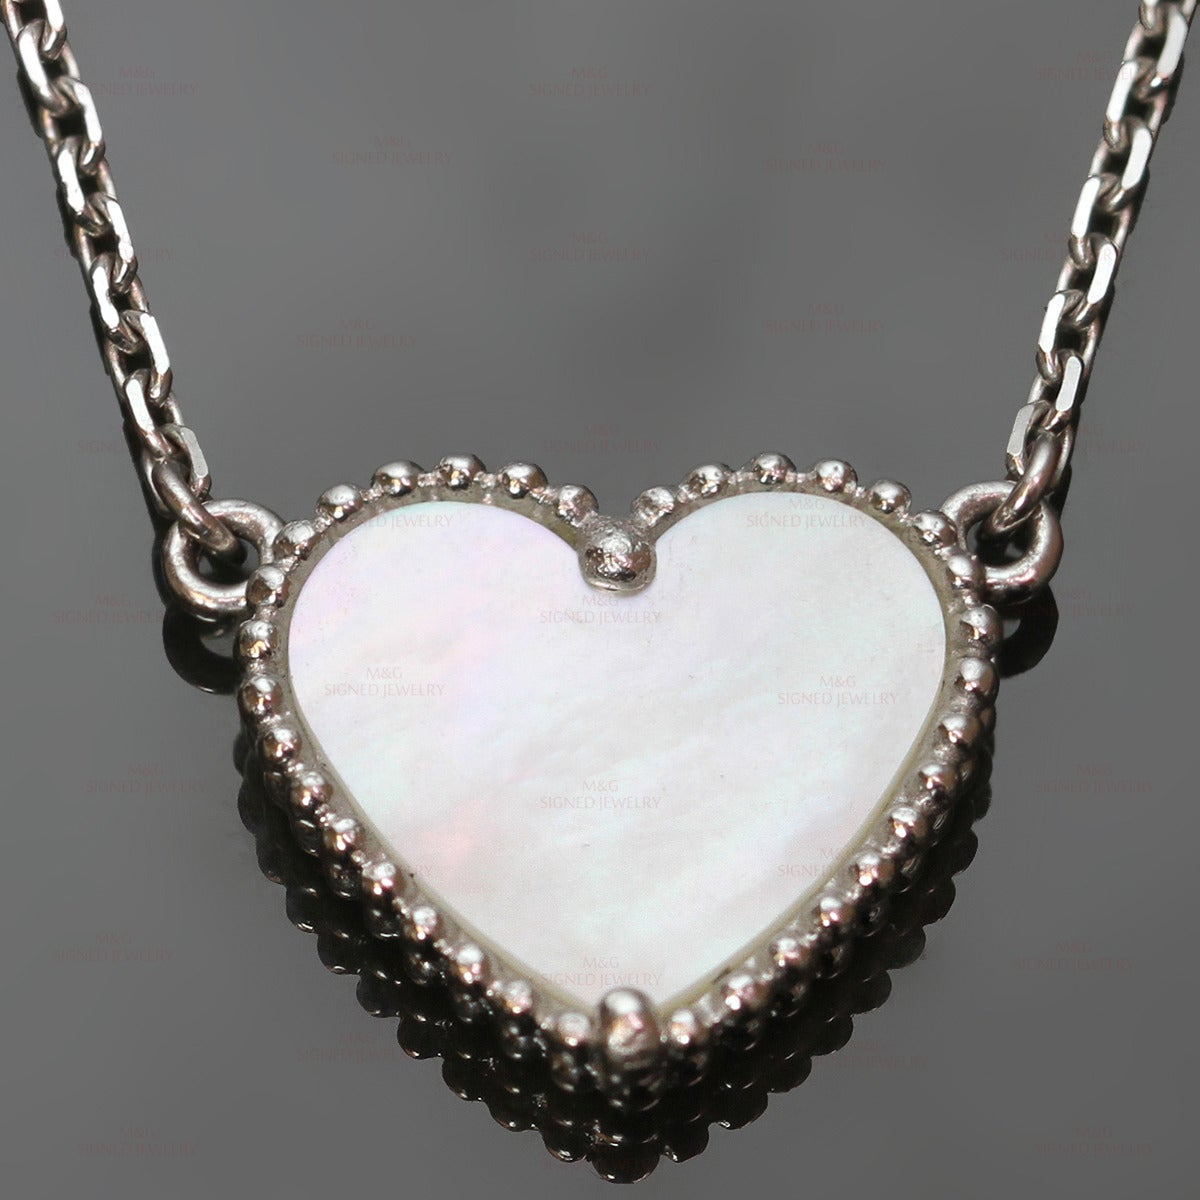 Van Cleef & Arpels Lucky Alhambra Mother of Pearl Gold Heart Necklace For Sale 1